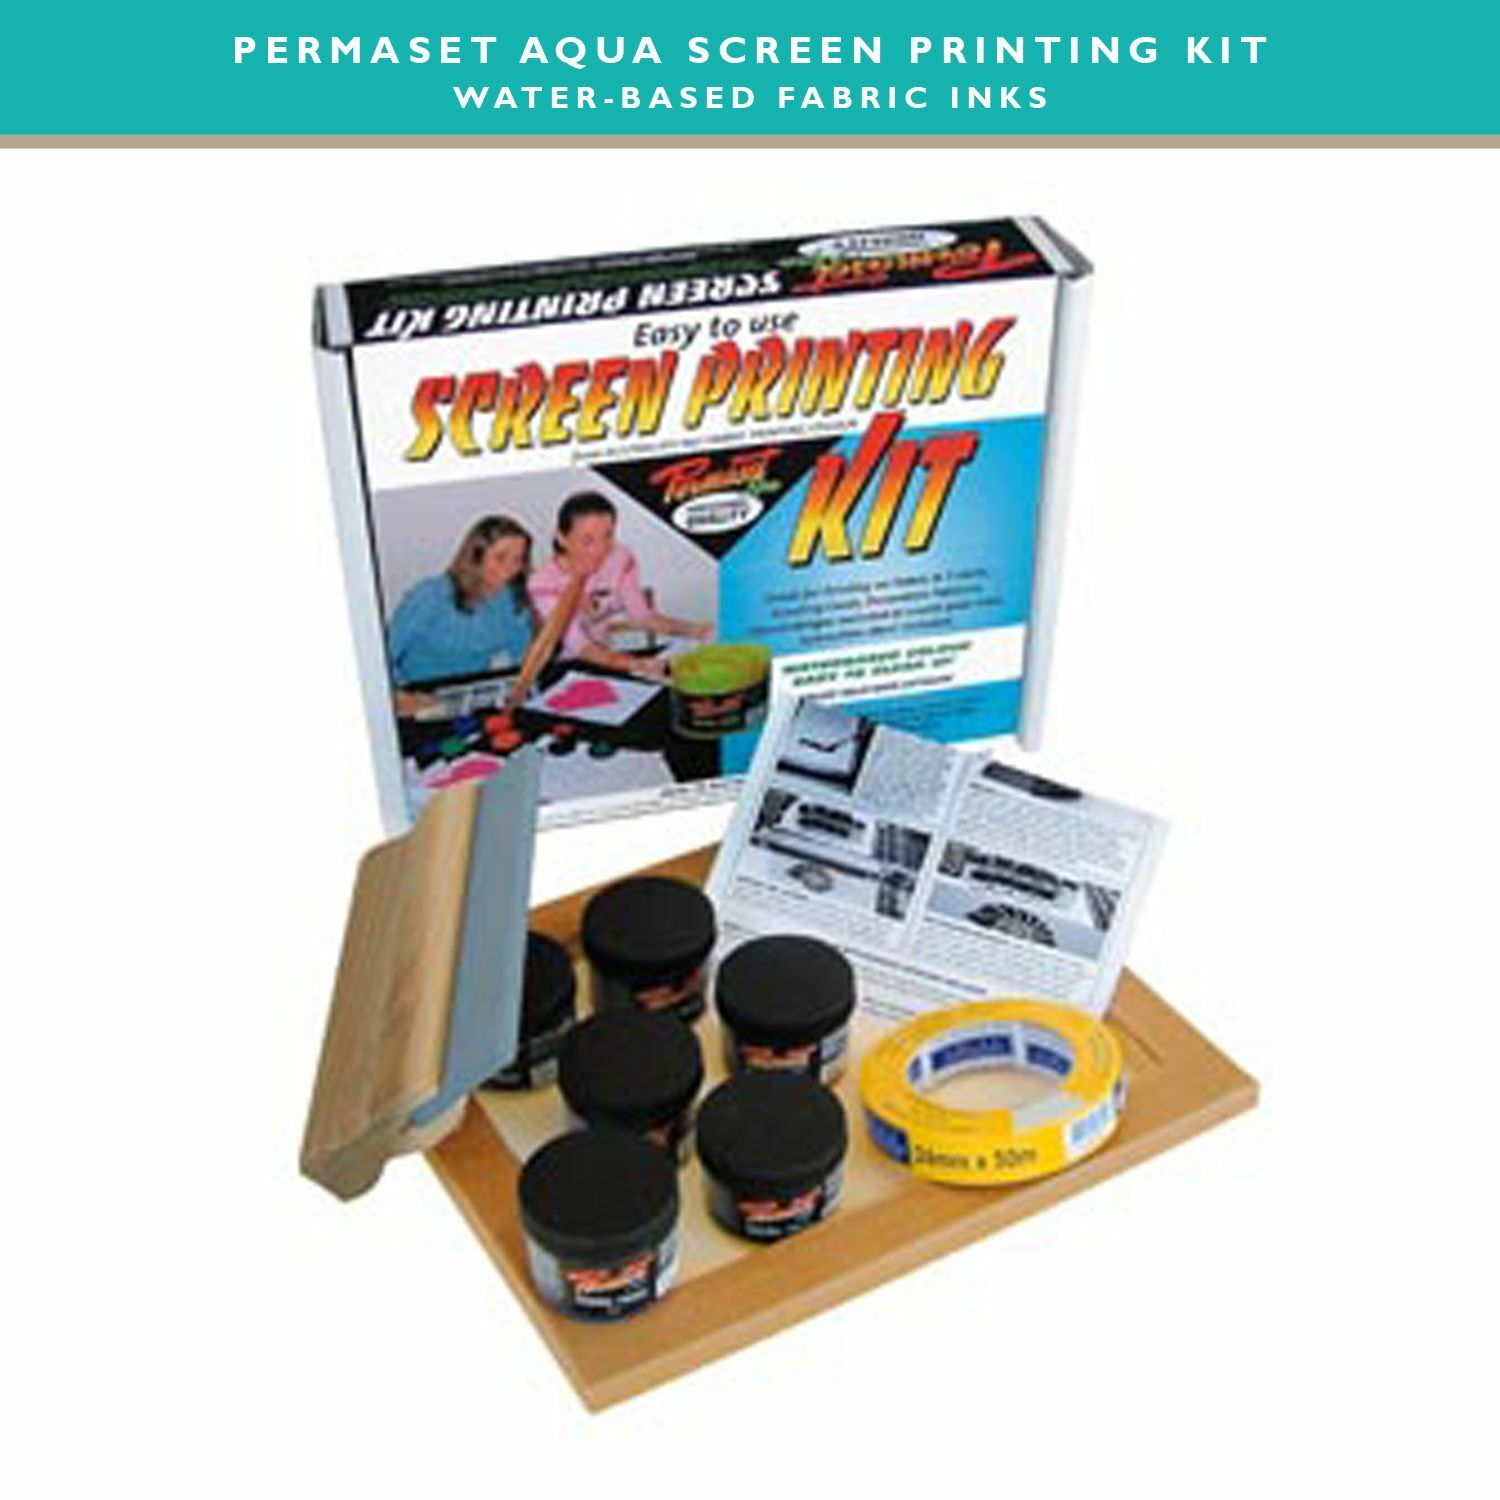 Permaset aqua screen printing kit